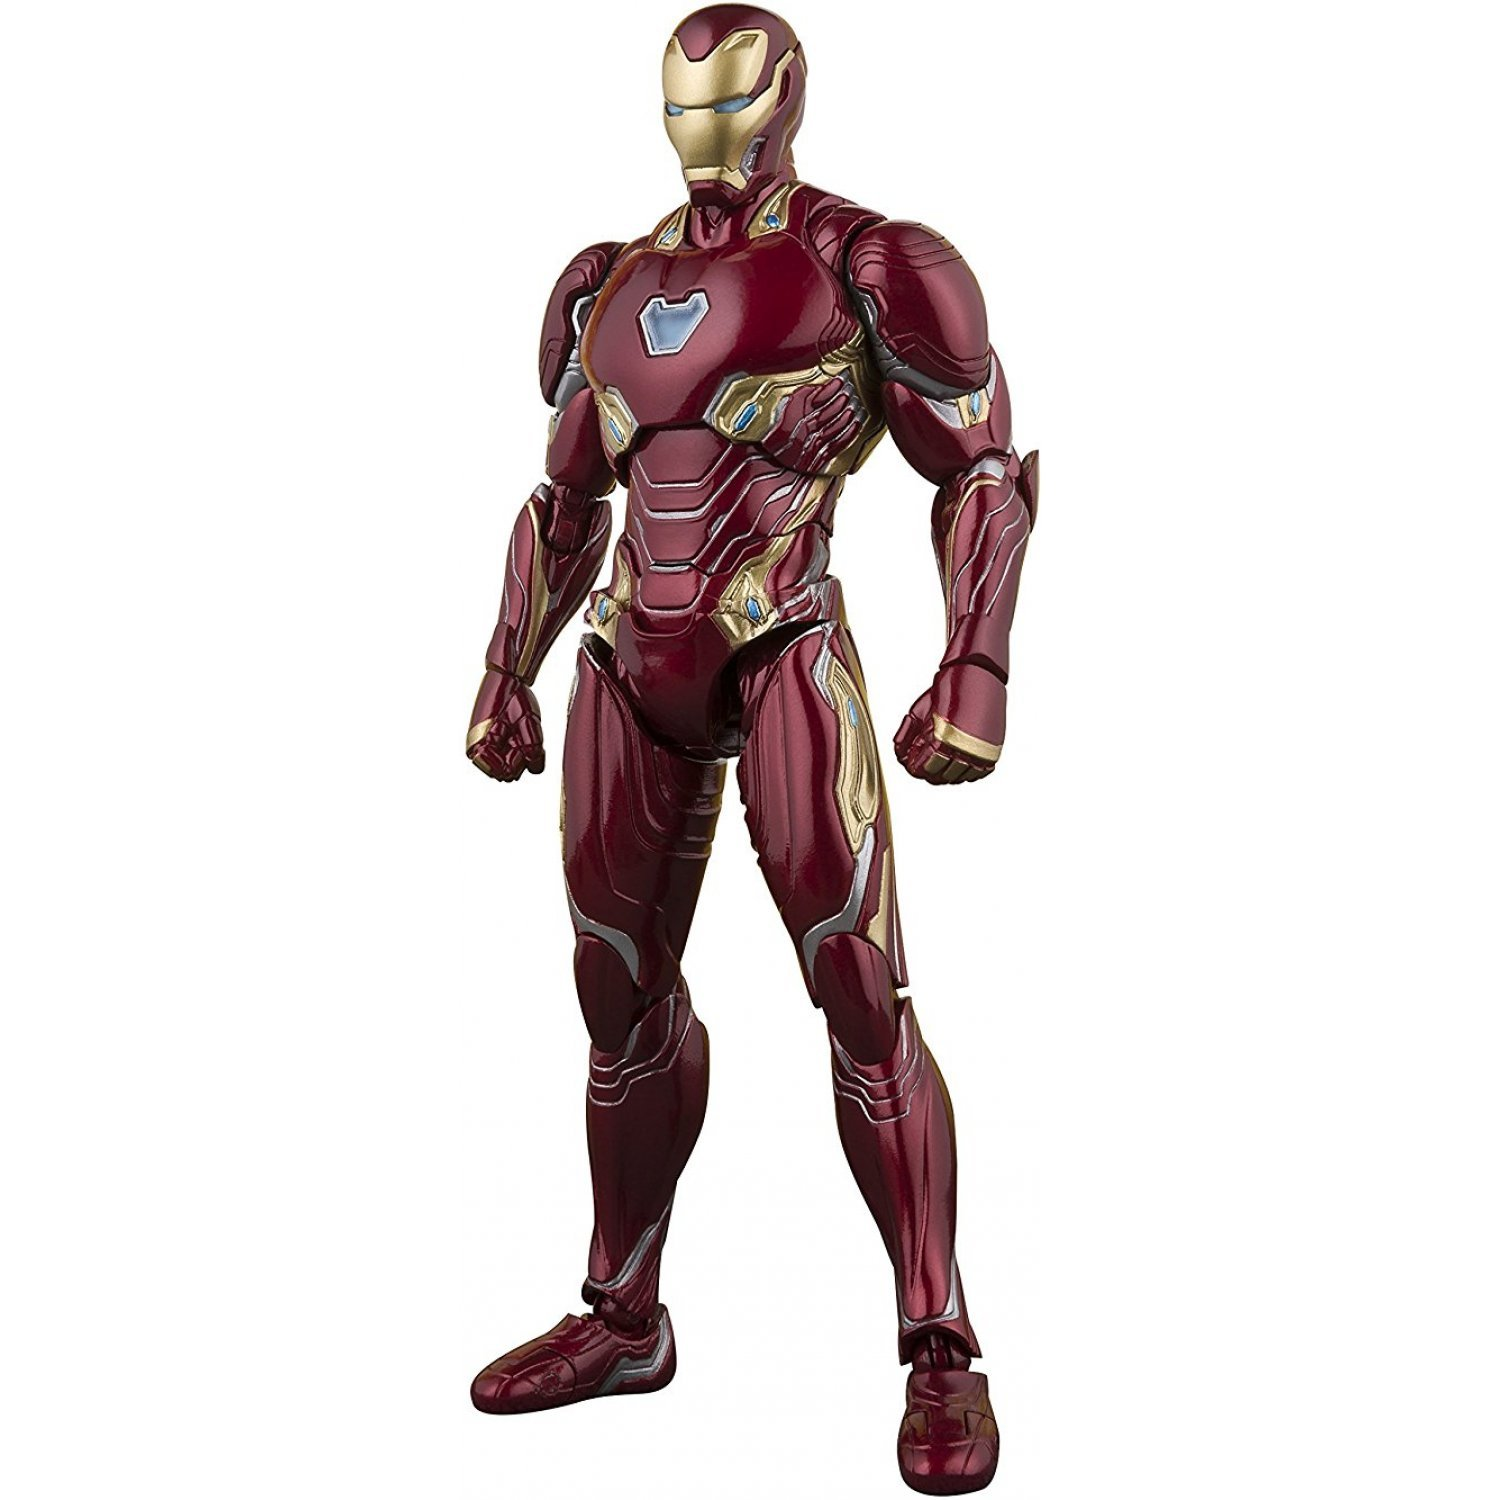 s.h.figuarts avengers infinity war: iron man mark 50